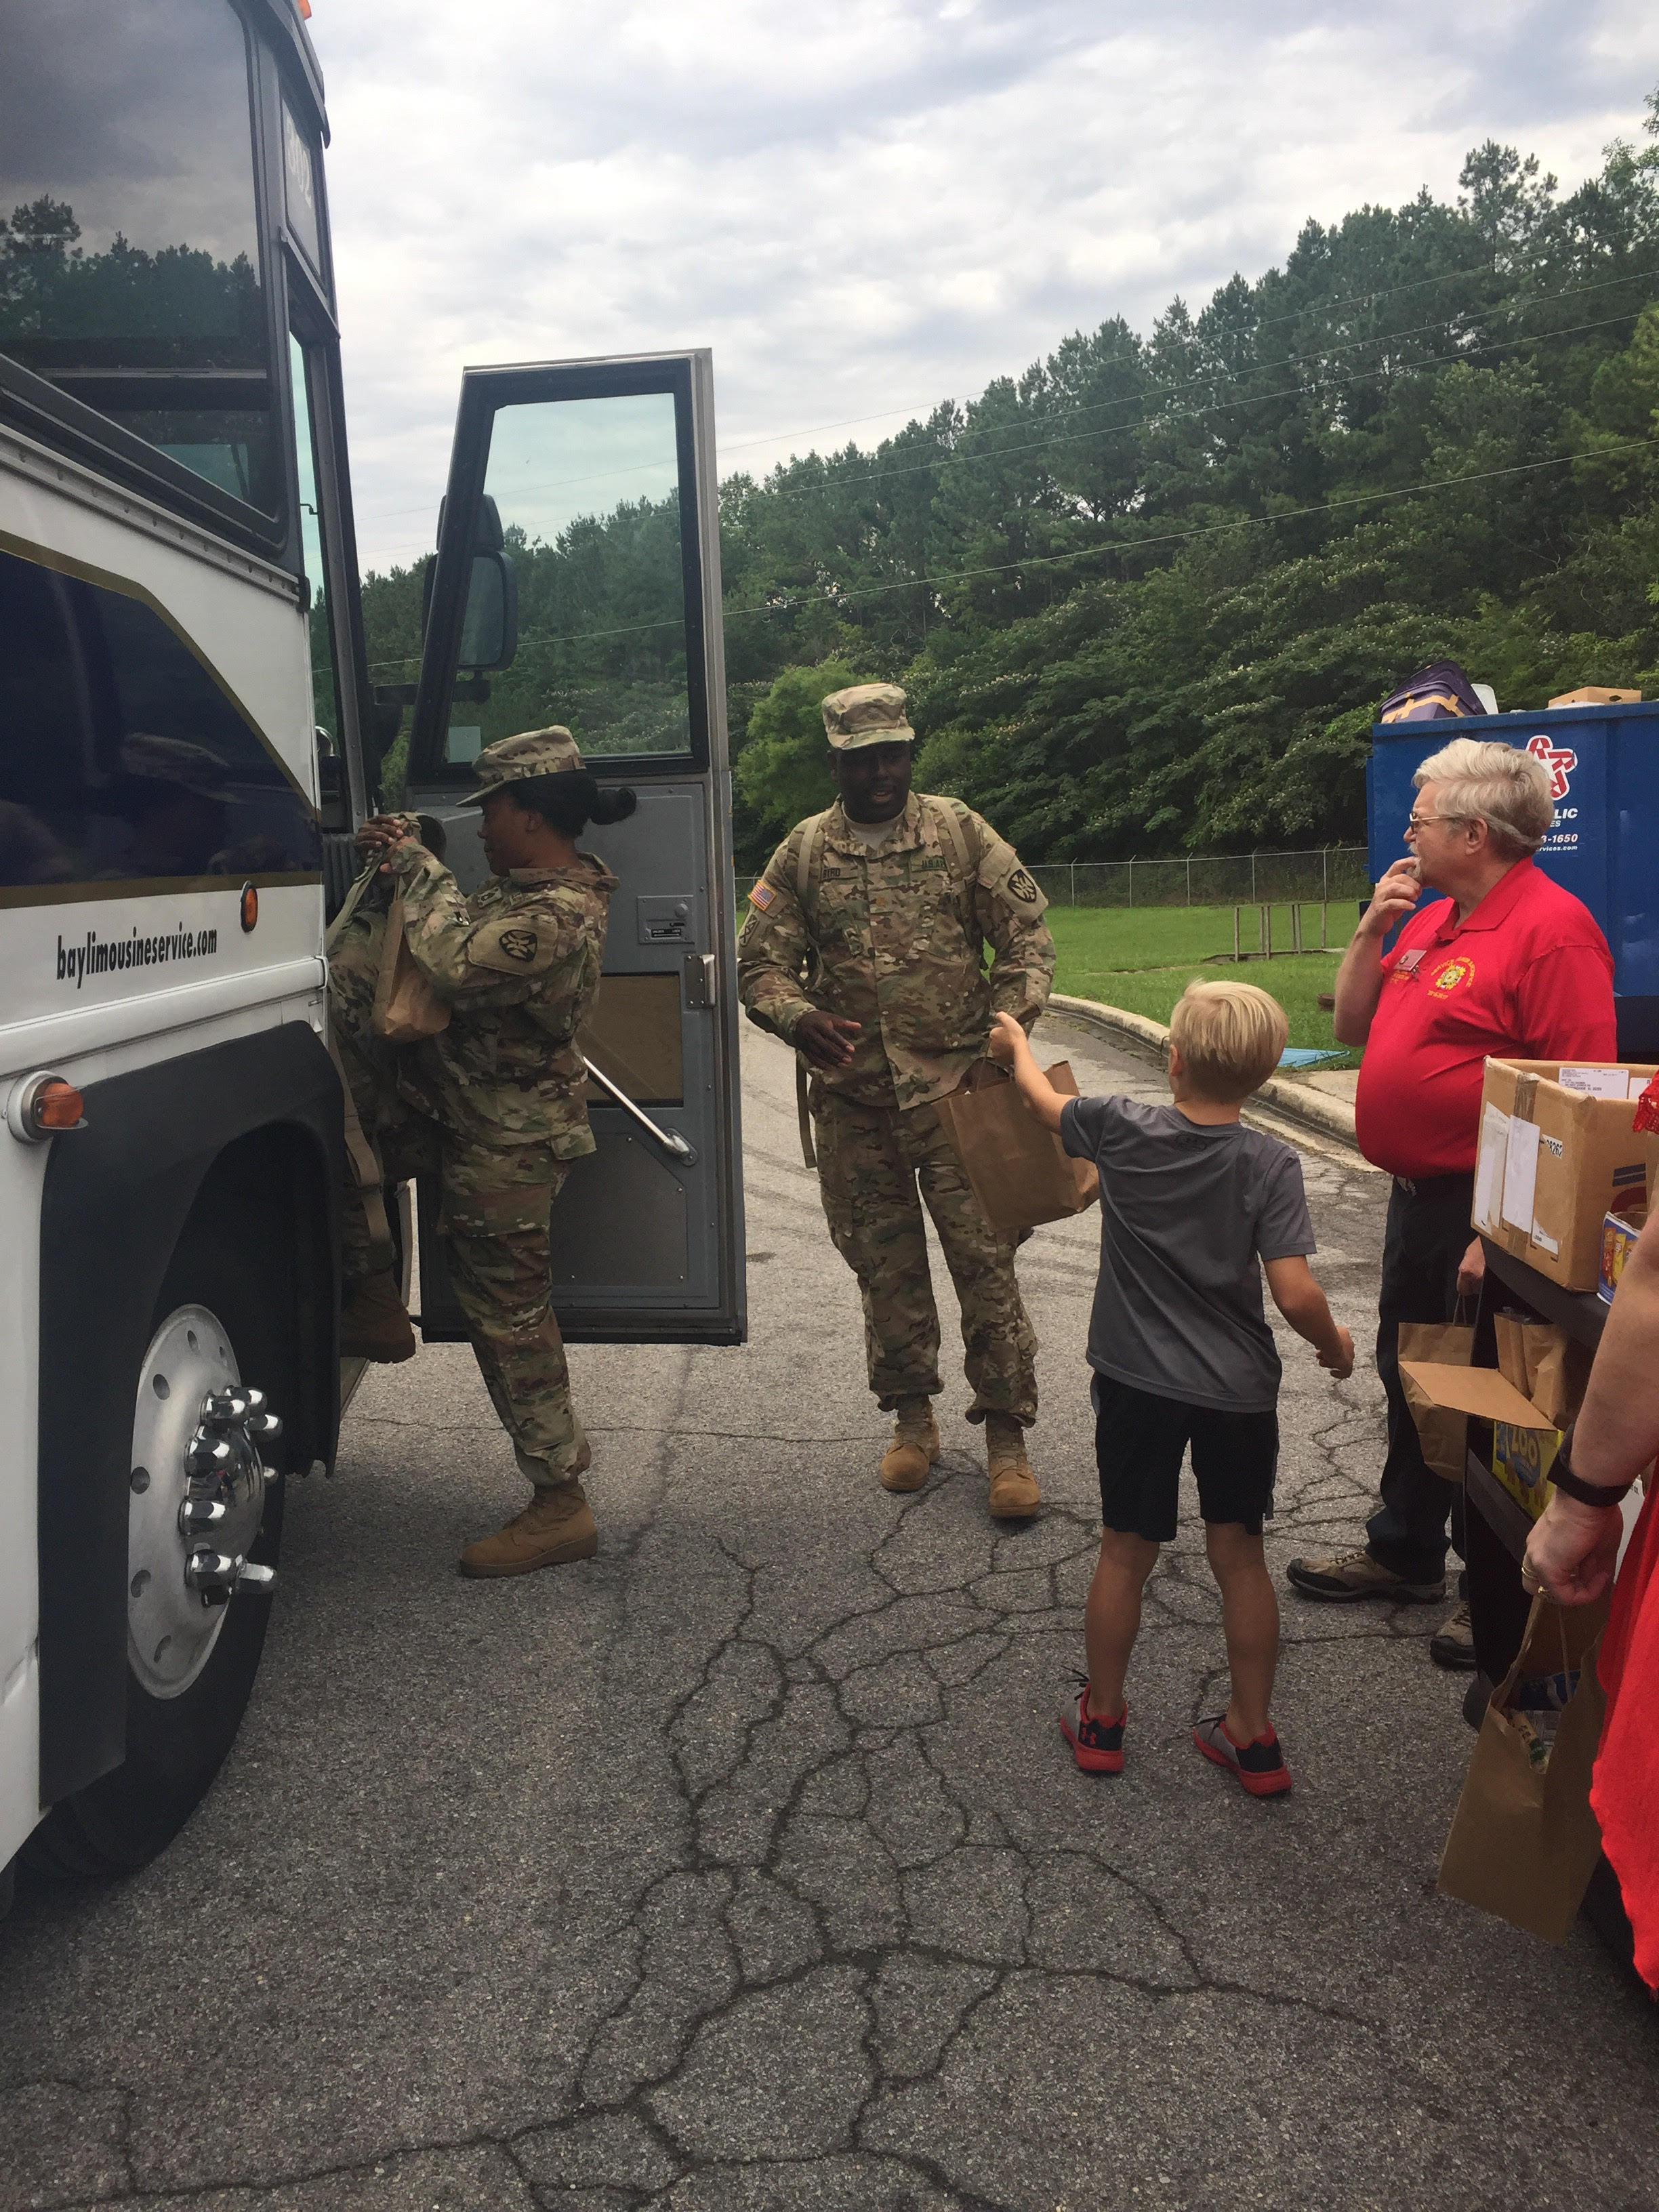 Family Serves Country By Gathering Greeting Cards For Soldiers